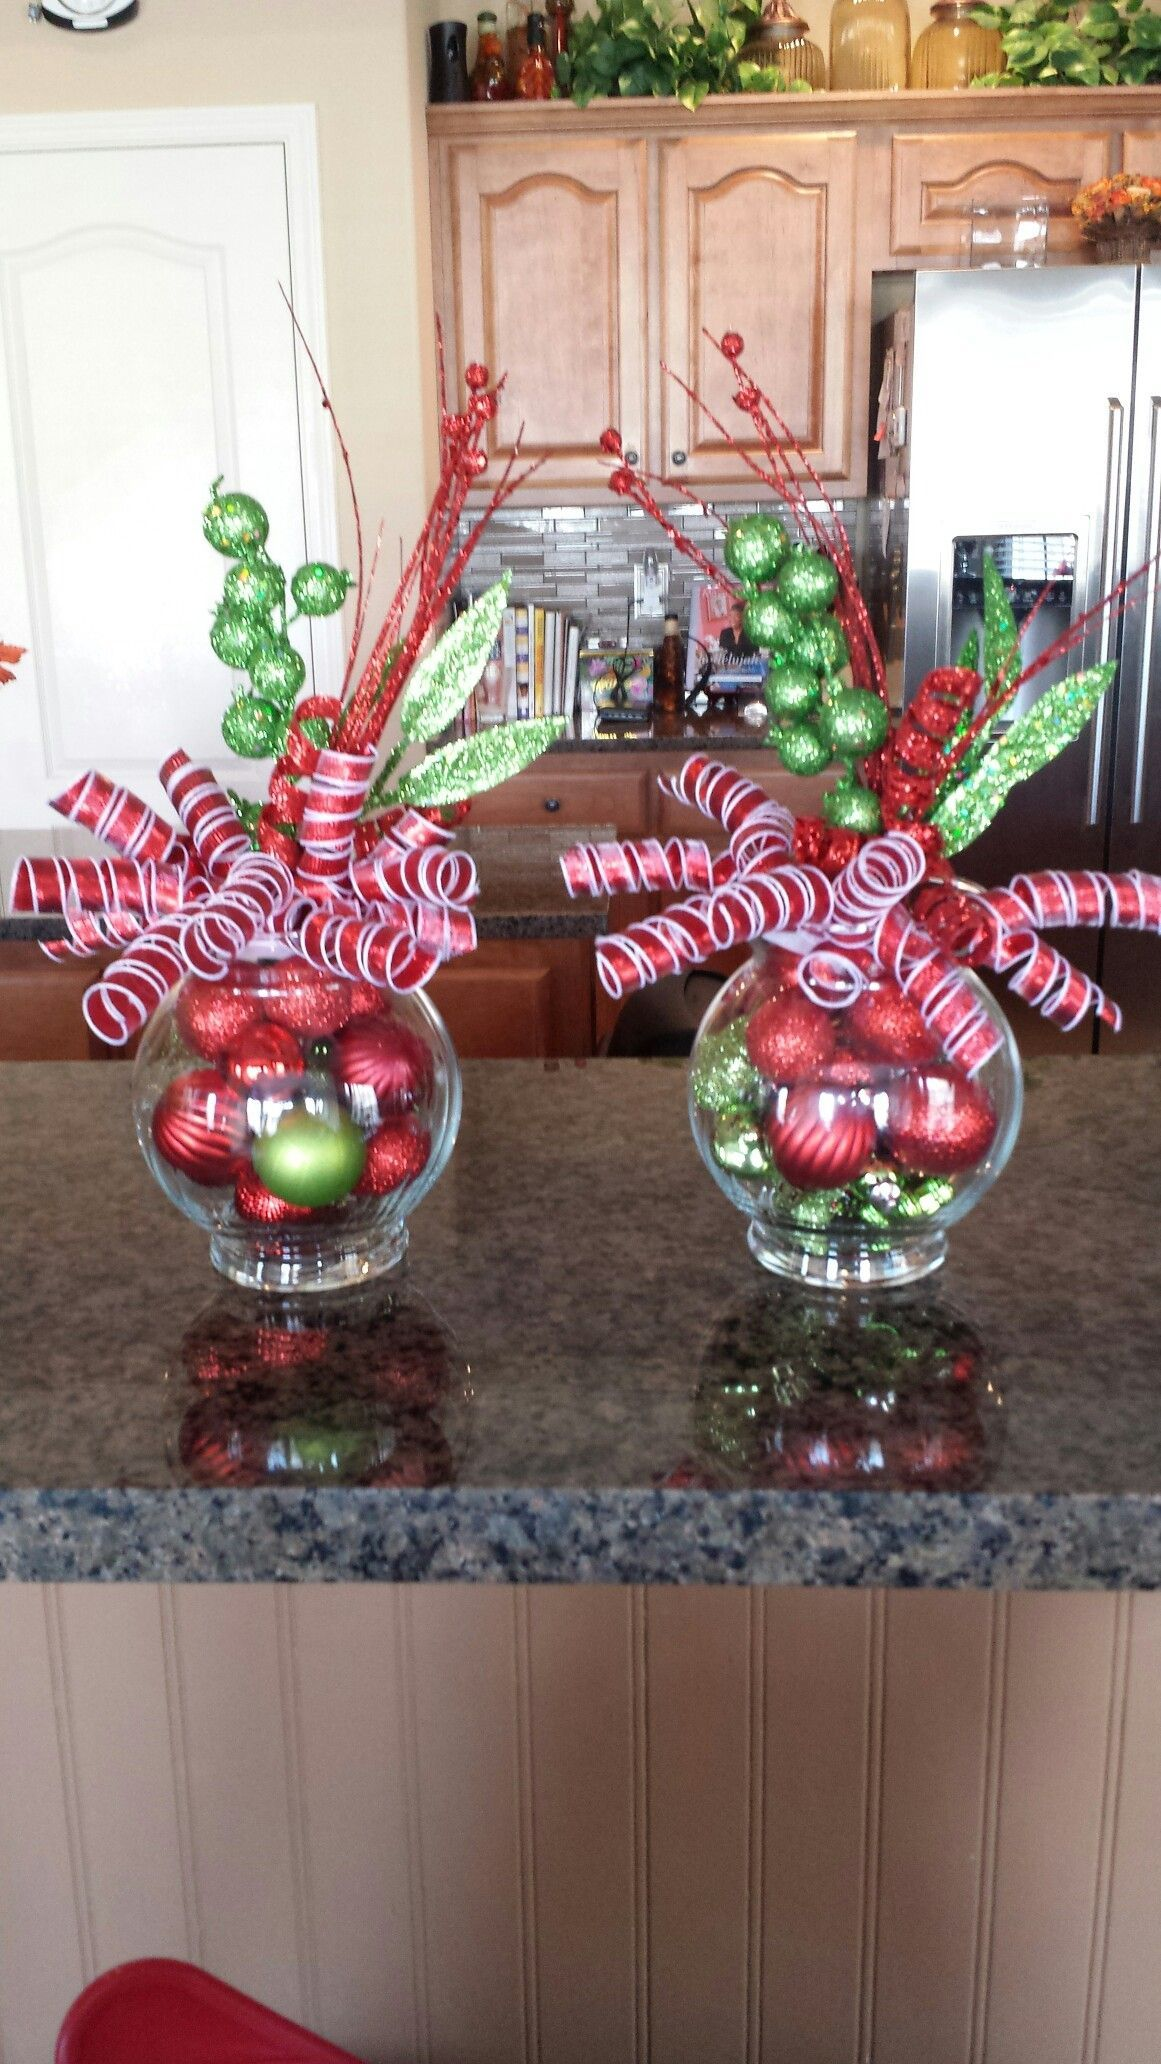 Found On Bing From Www Pinterest Com In 2020 Christmas Diy Indoor Christmas Decorations Grinch Christmas Decorations